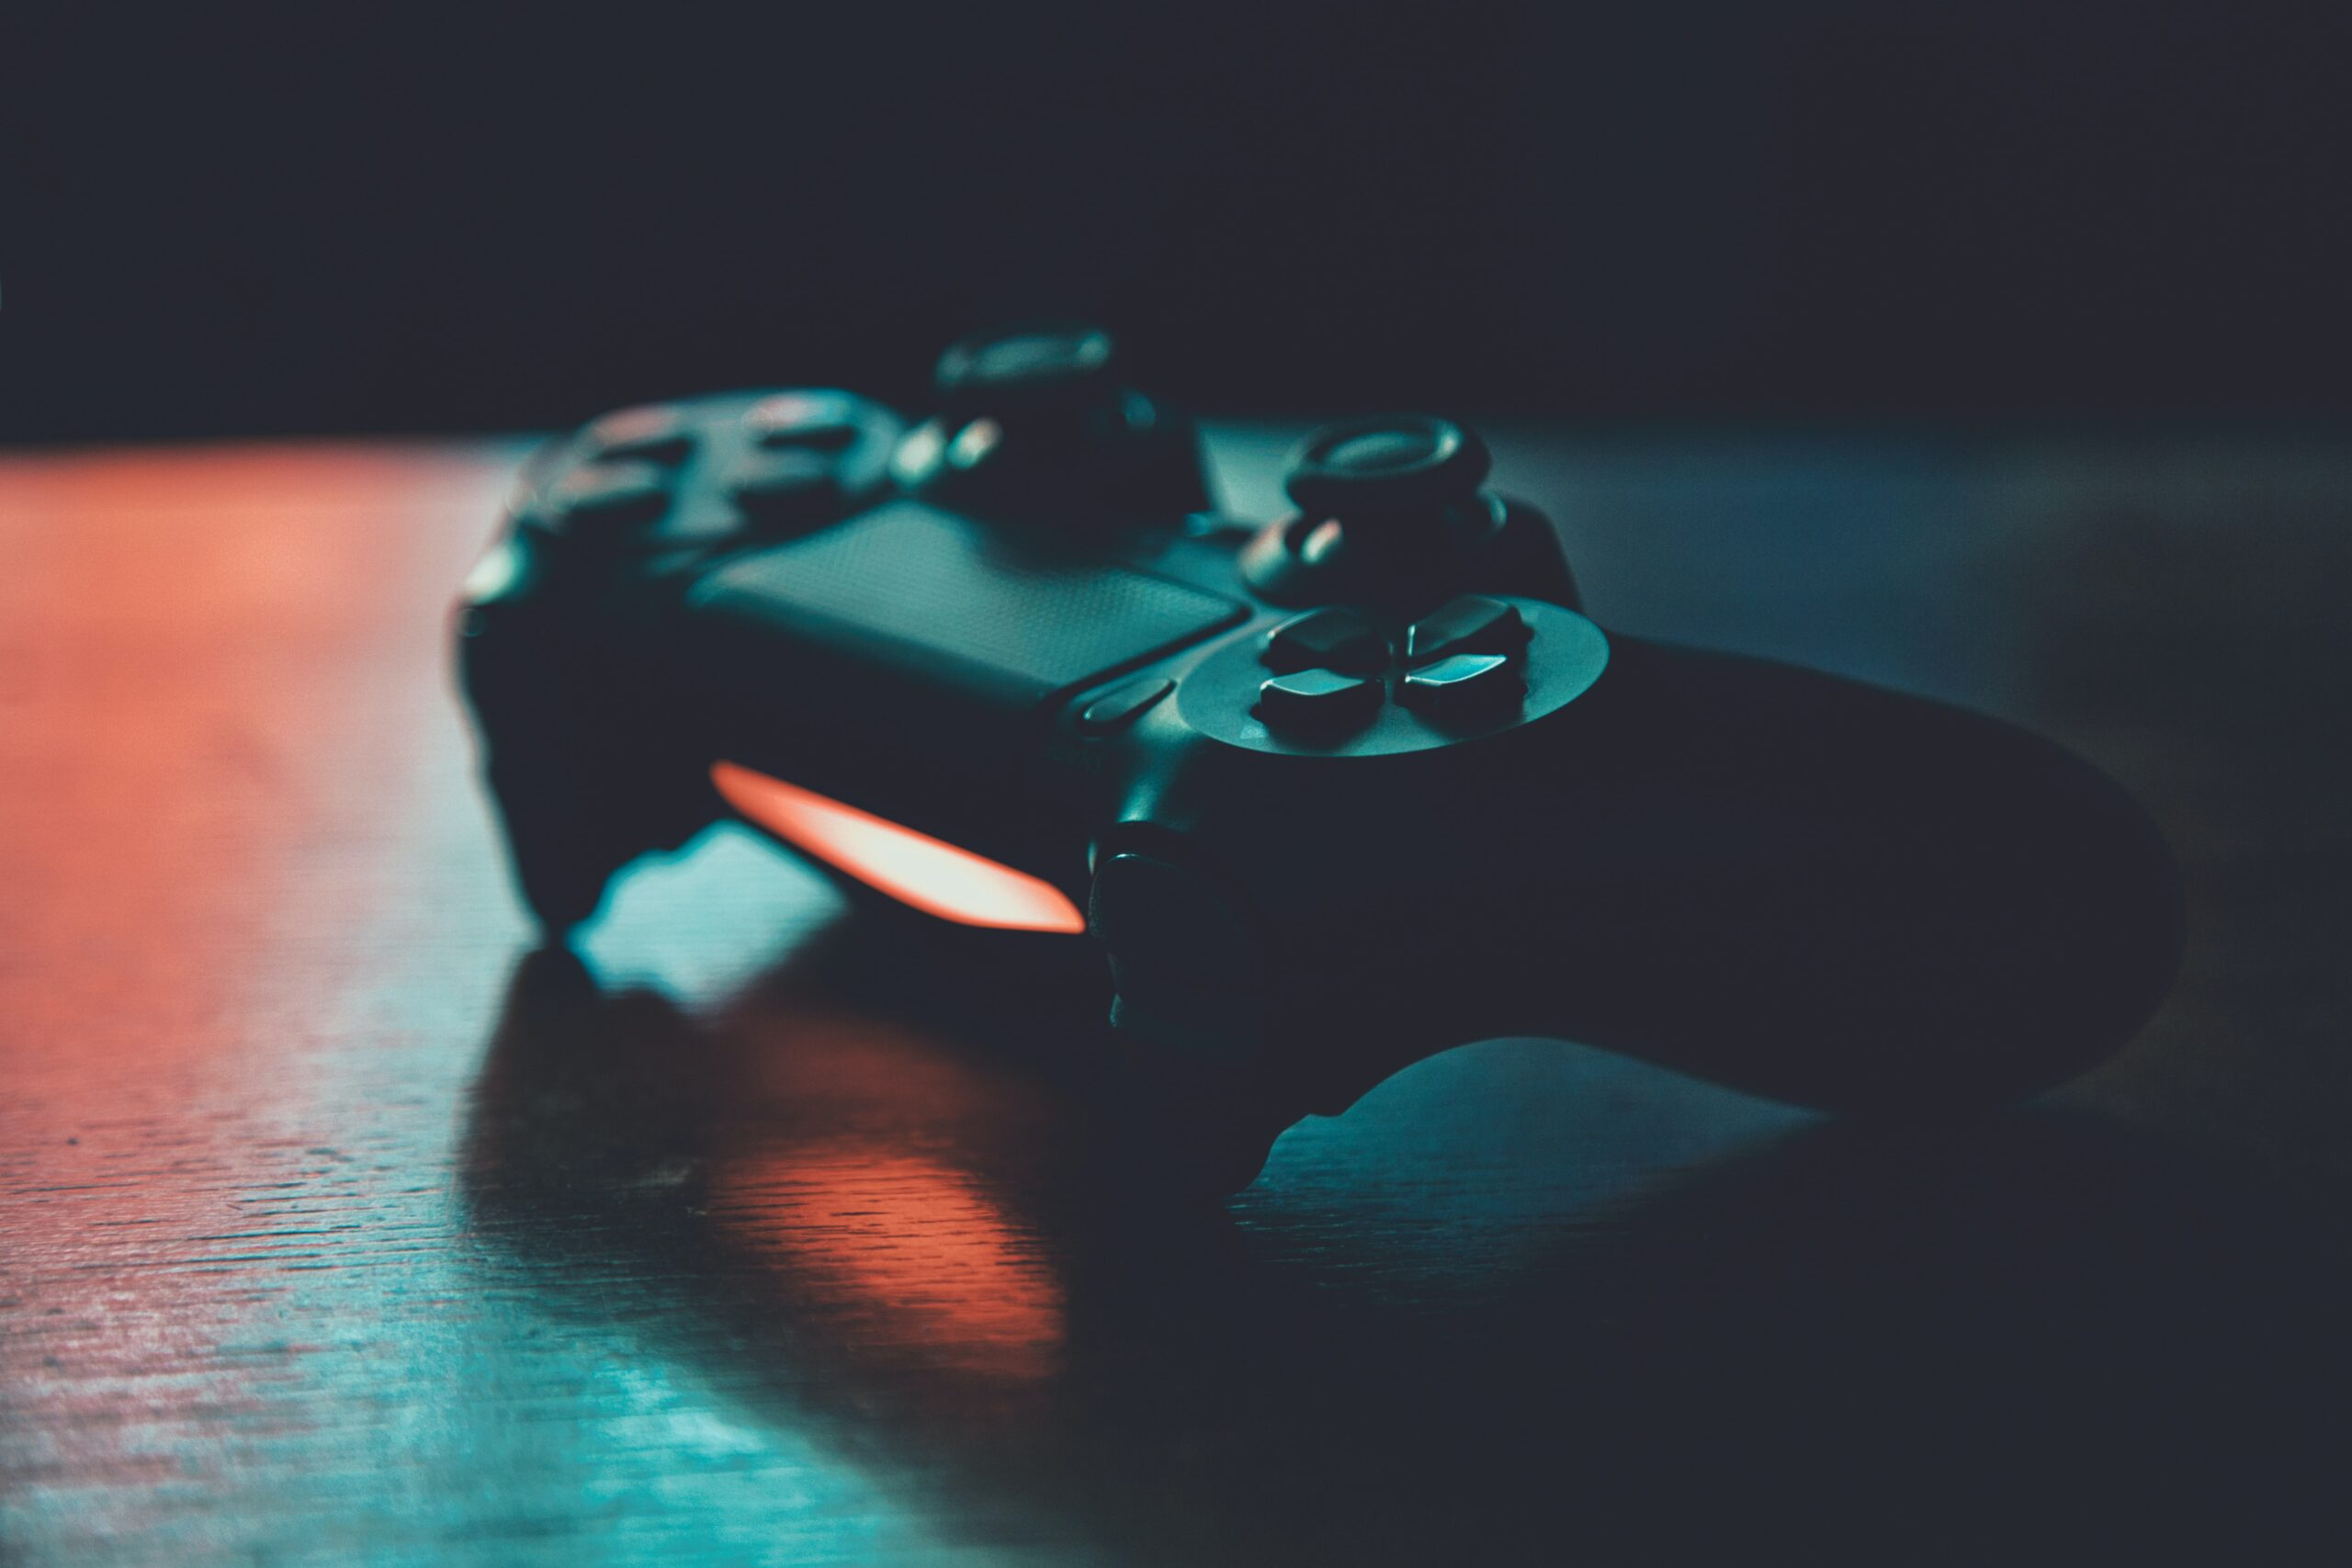 The Mental and Social Pressures of Streaming A Video Game